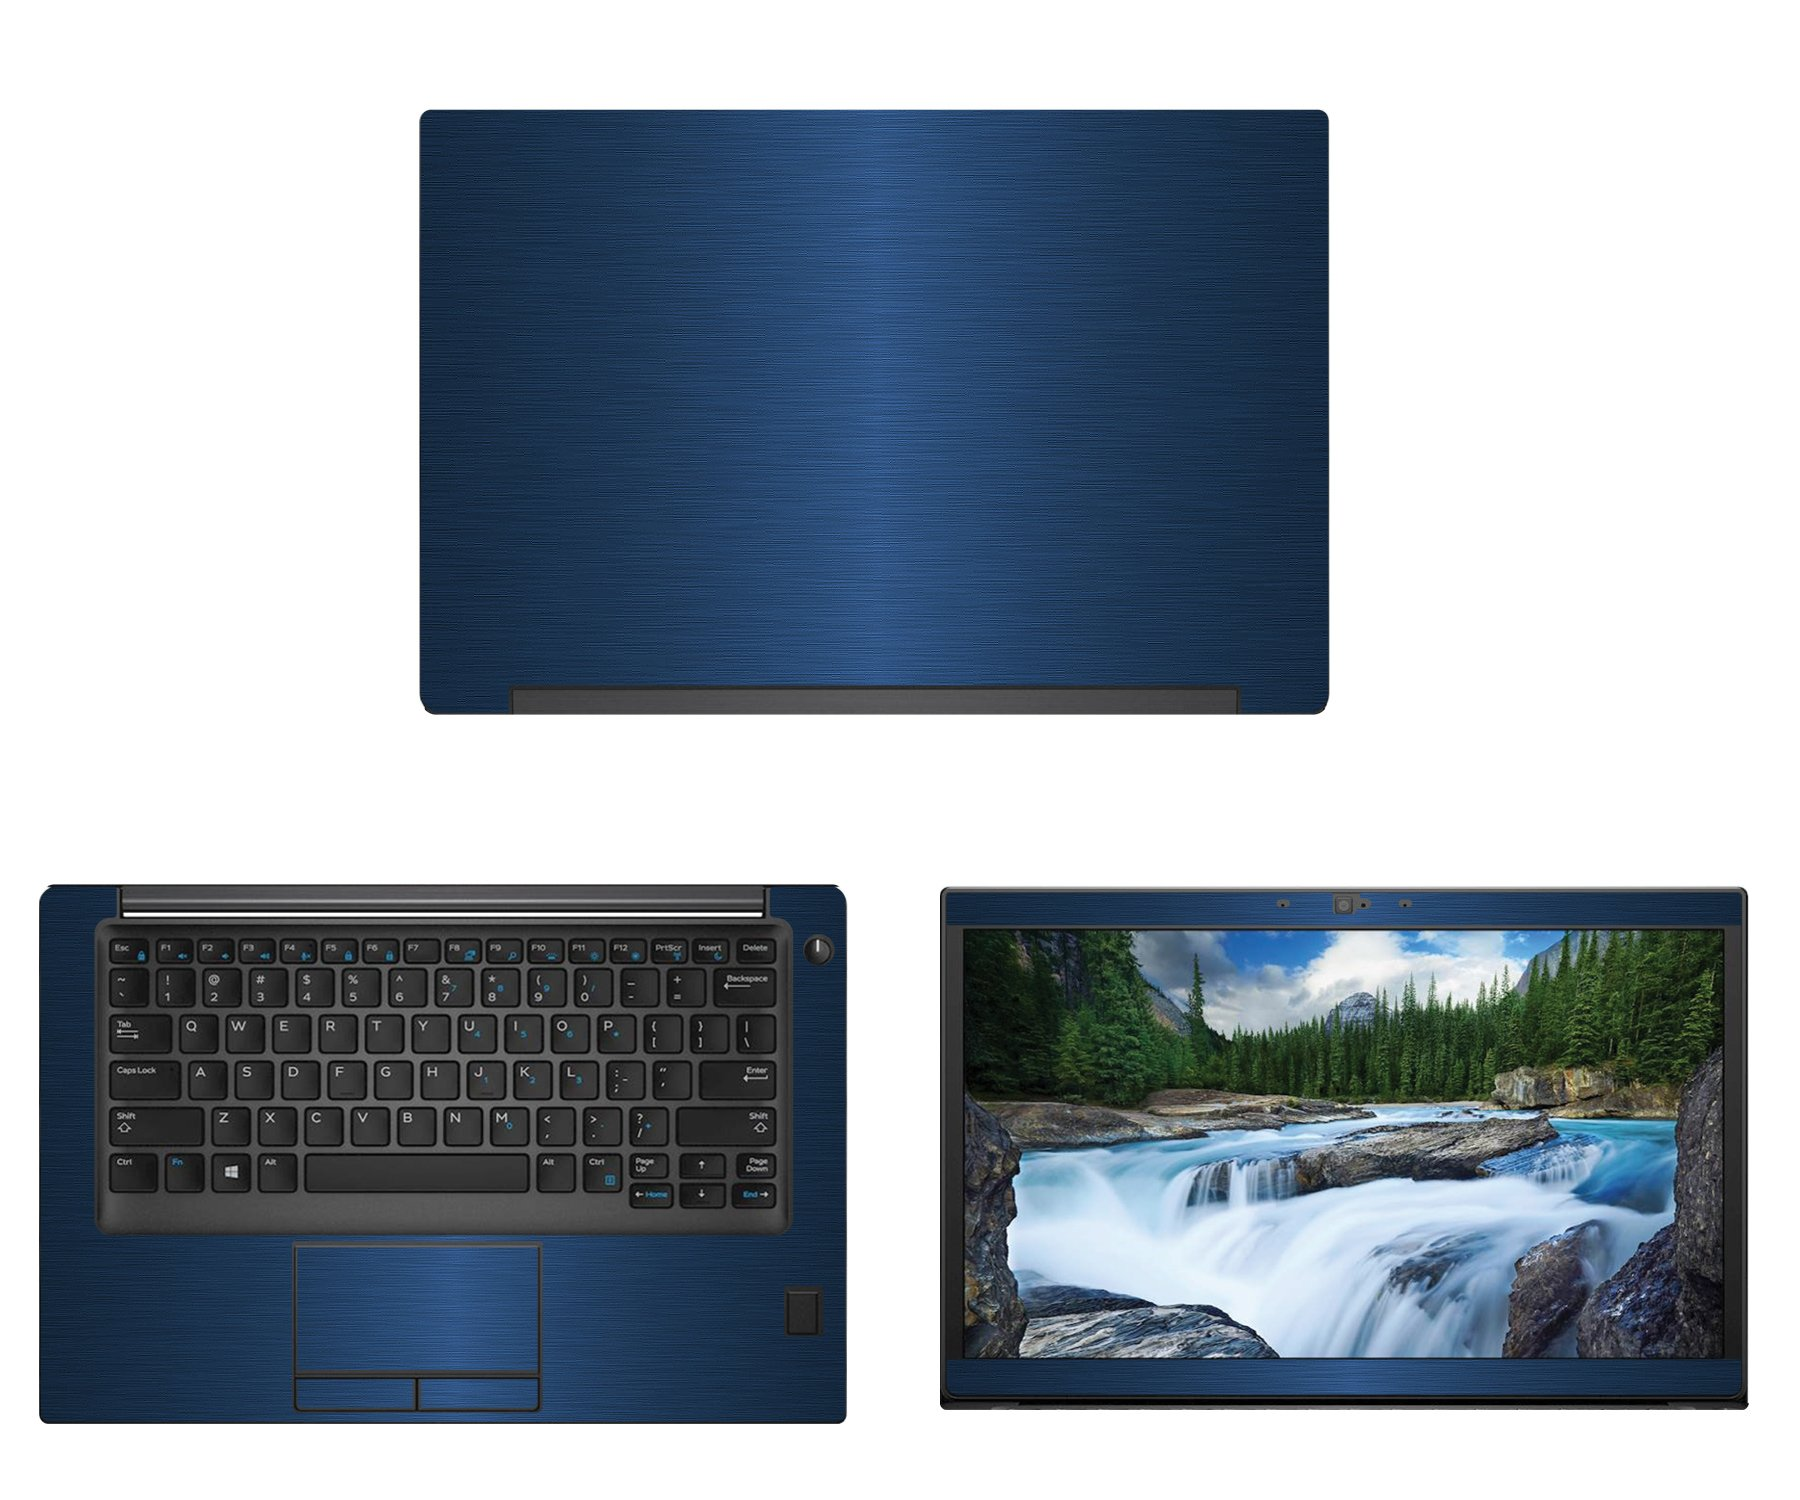 decalrus - Protective Decal for Dell Latitude 7490 (14'' Screen) Laptop Blue Texture Brushed Aluminum Skin case Cover wrap BAdellLatitude7490Blue